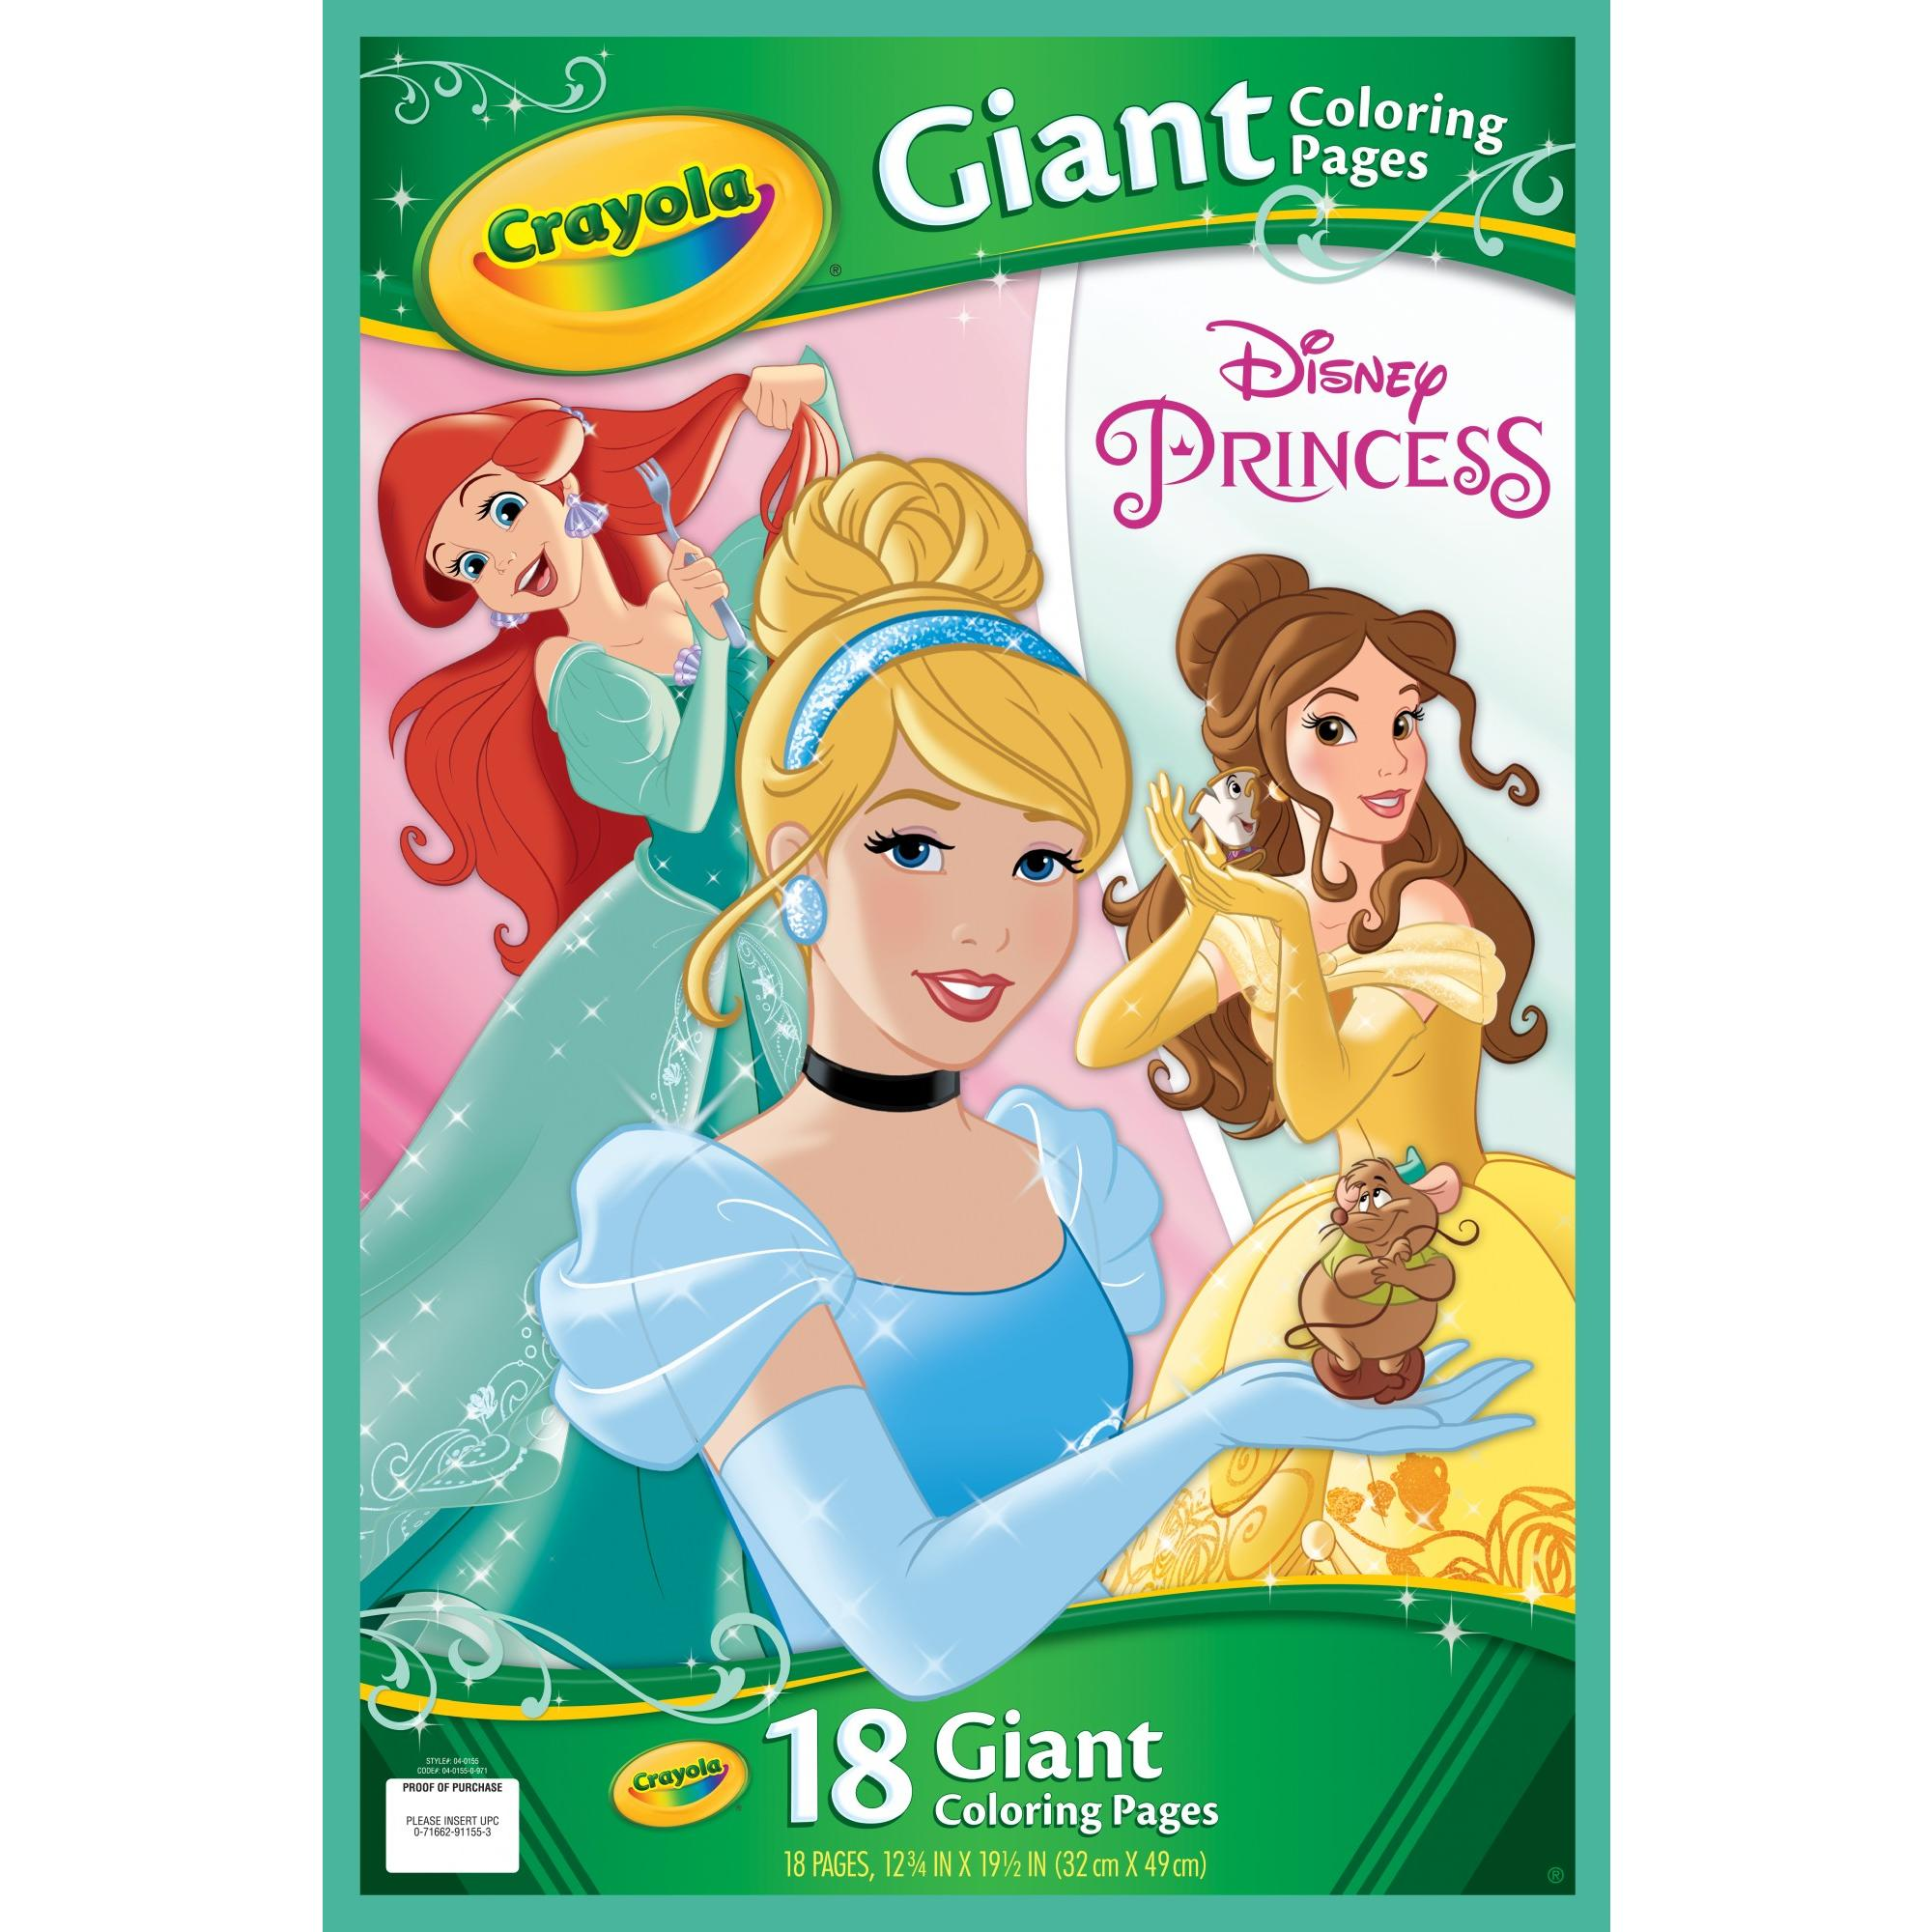 Crayola Giant Coloring Pages Disney Princess : Crayola giant coloring pages shopkins and disney